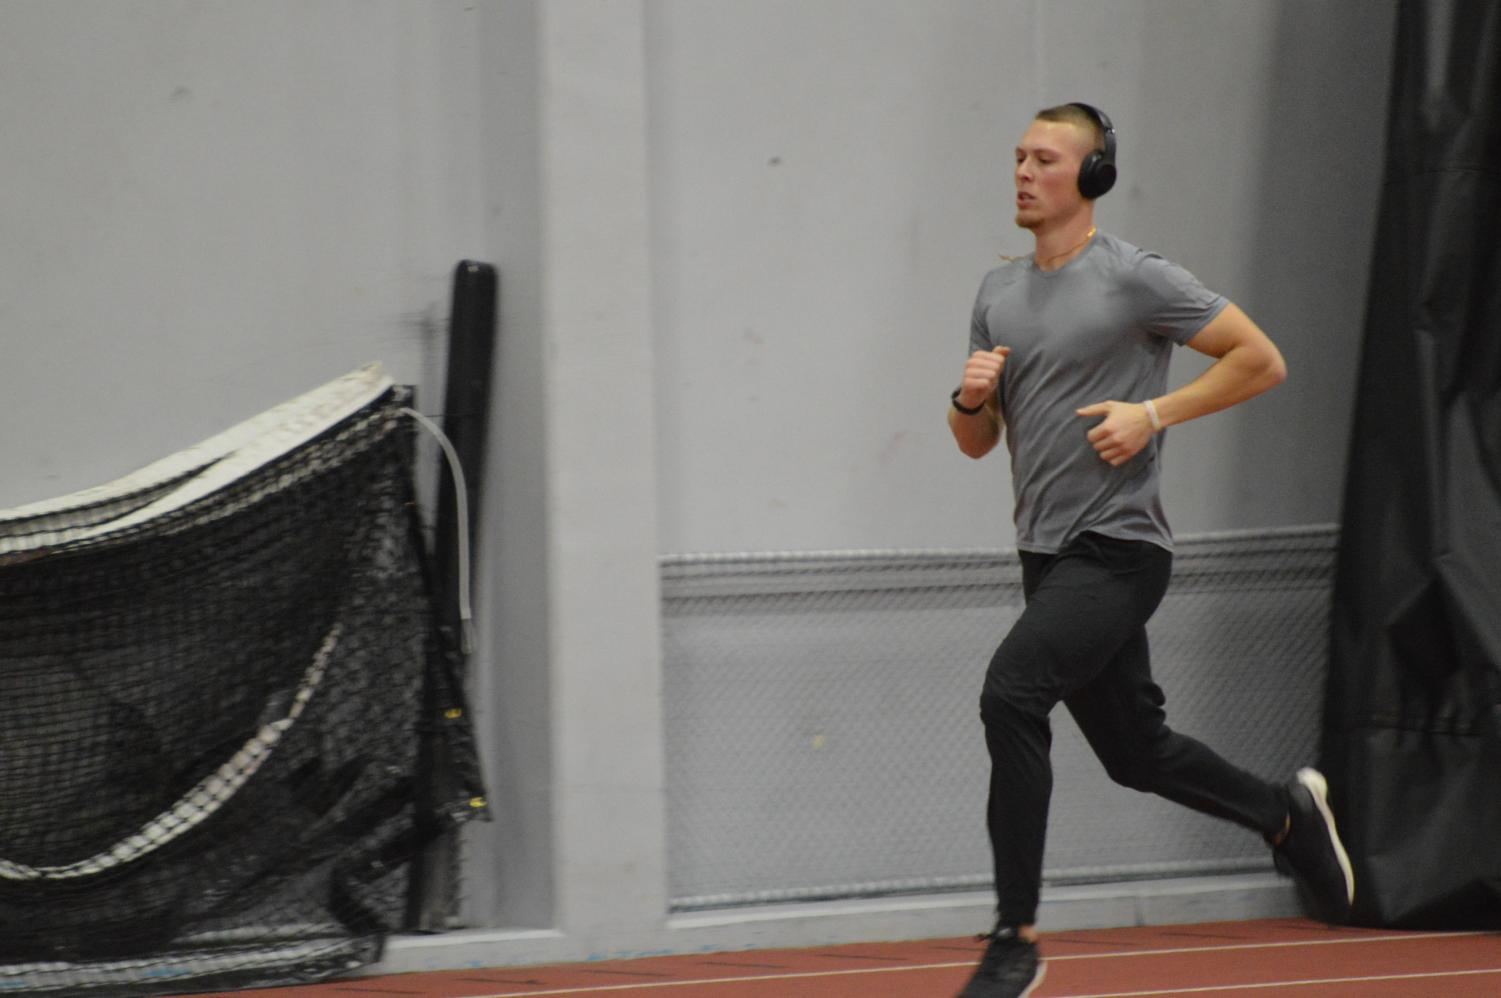 Senior hurdler Parker Bowden runs around the field house track on Jan. 10. Bowden Jr. finished second in the 60-meter hurdles at the Lauren McCuskey Memorial Open on Jan. 12.